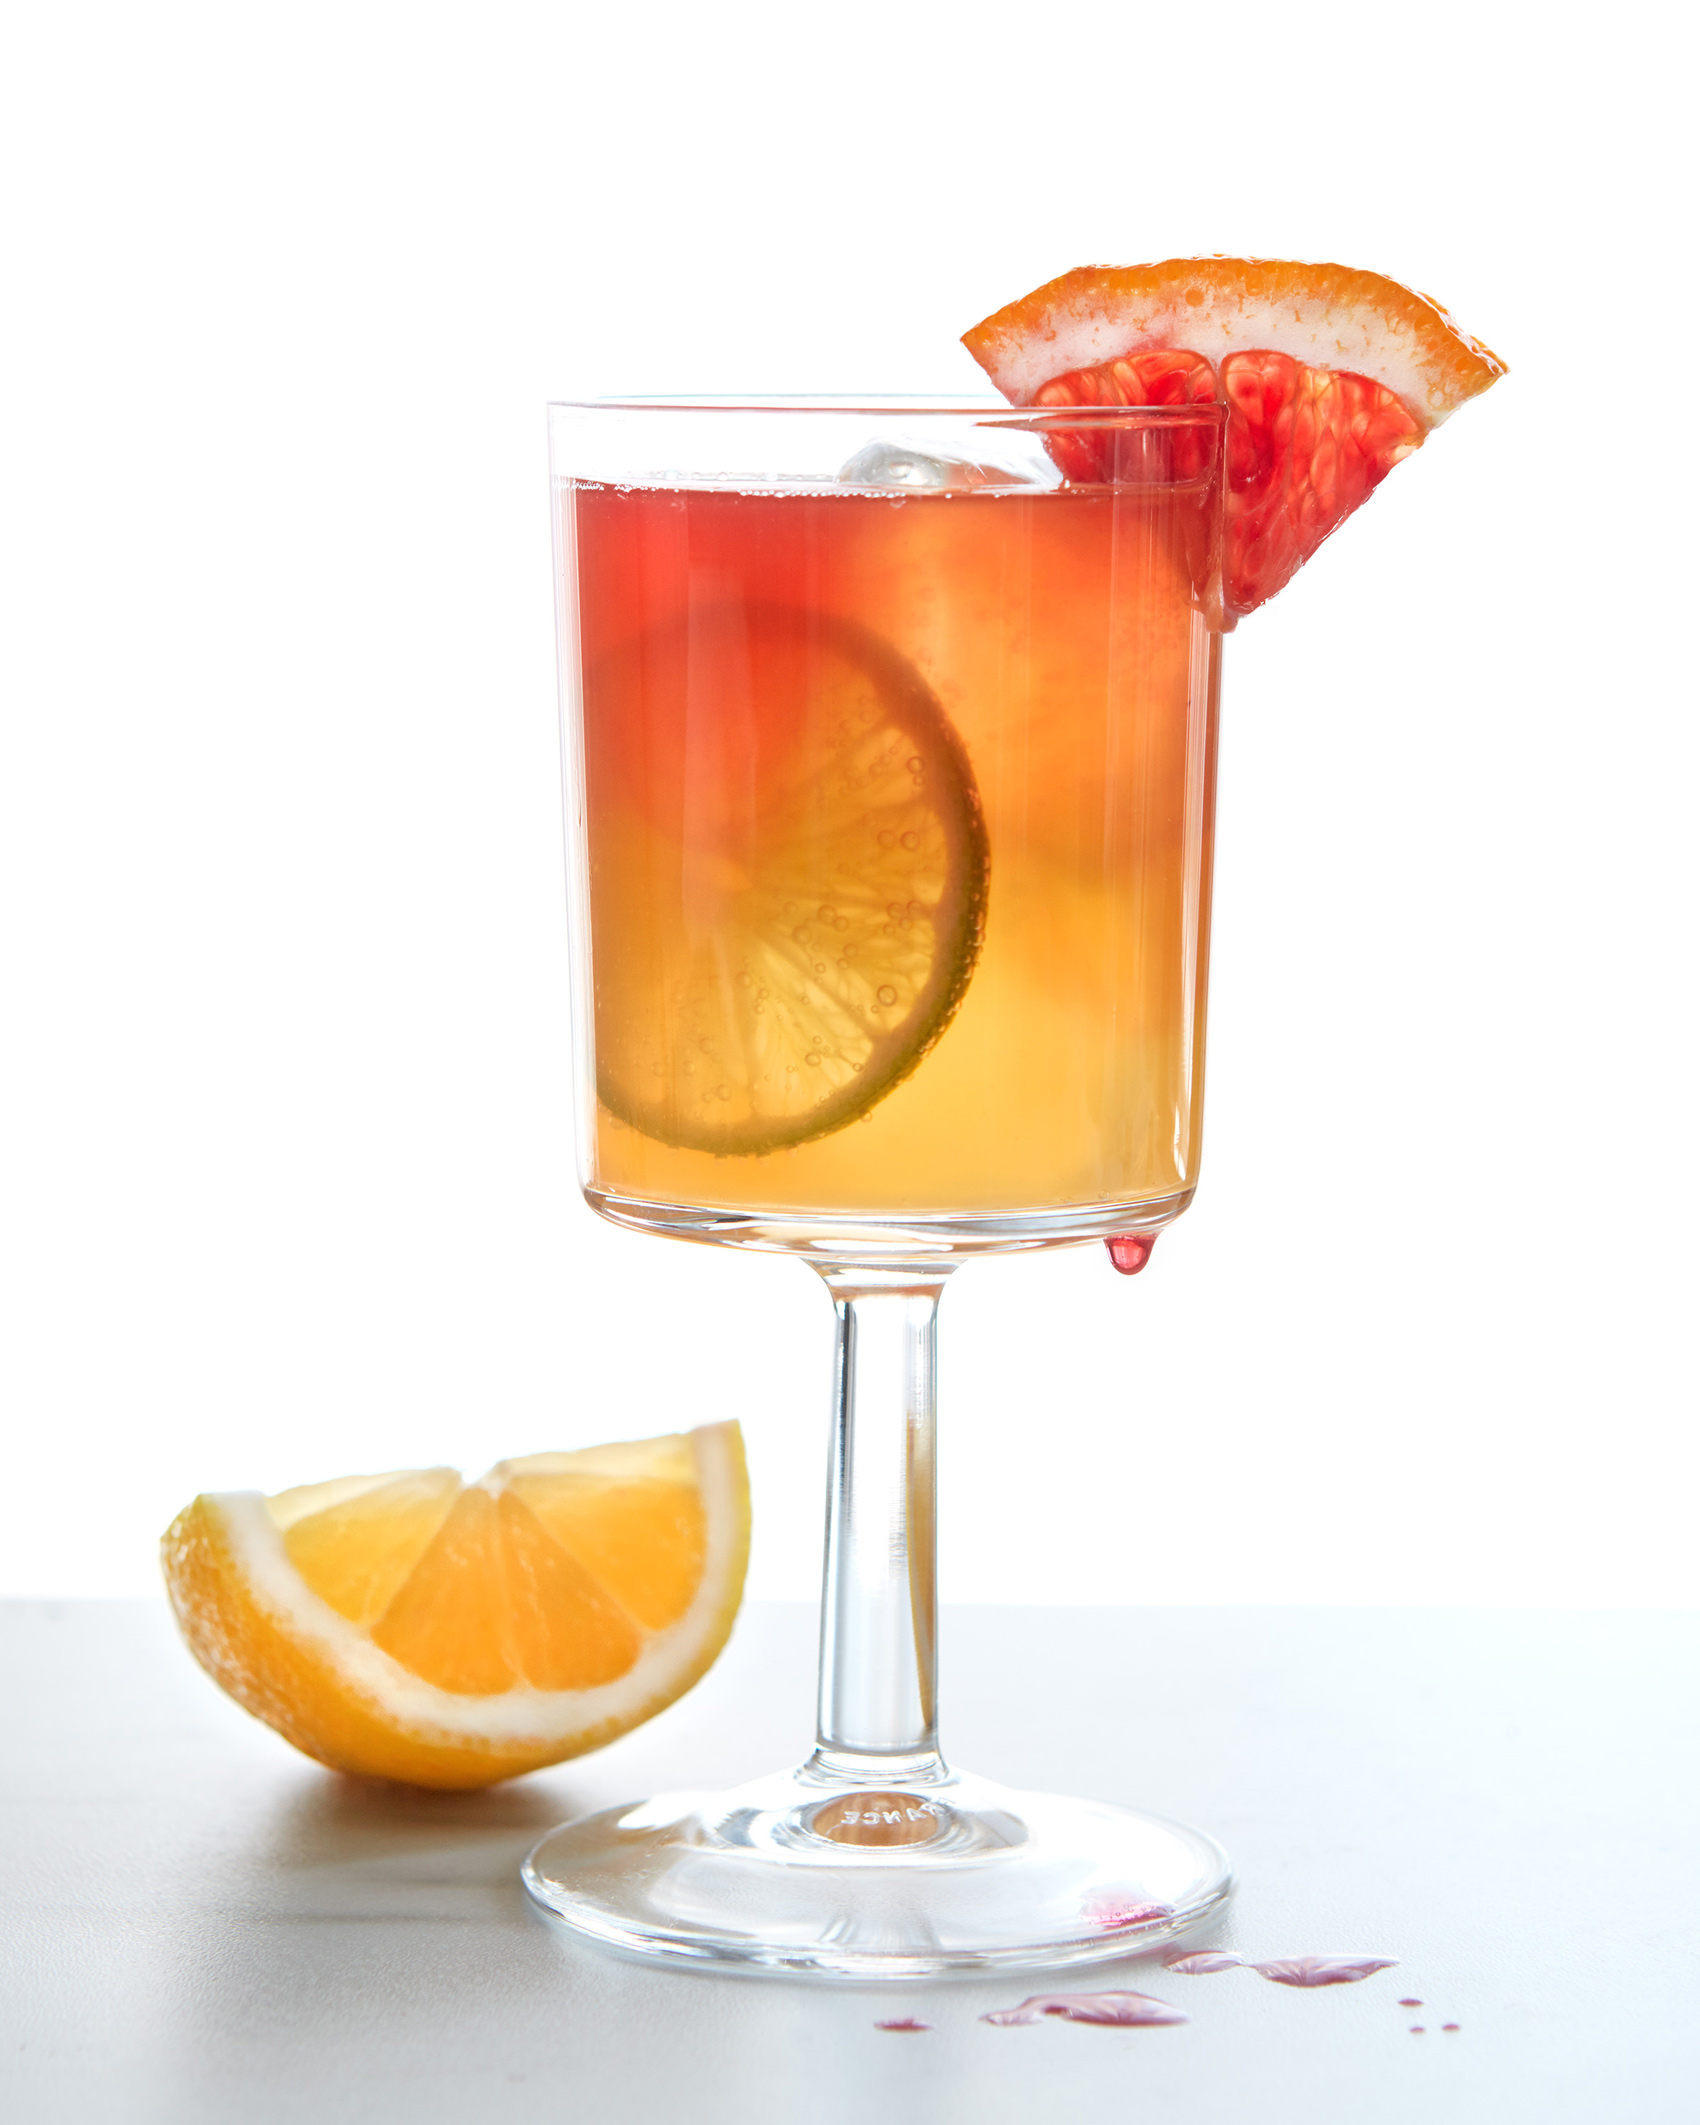 bublys-photography-coctail-citrus-WEB